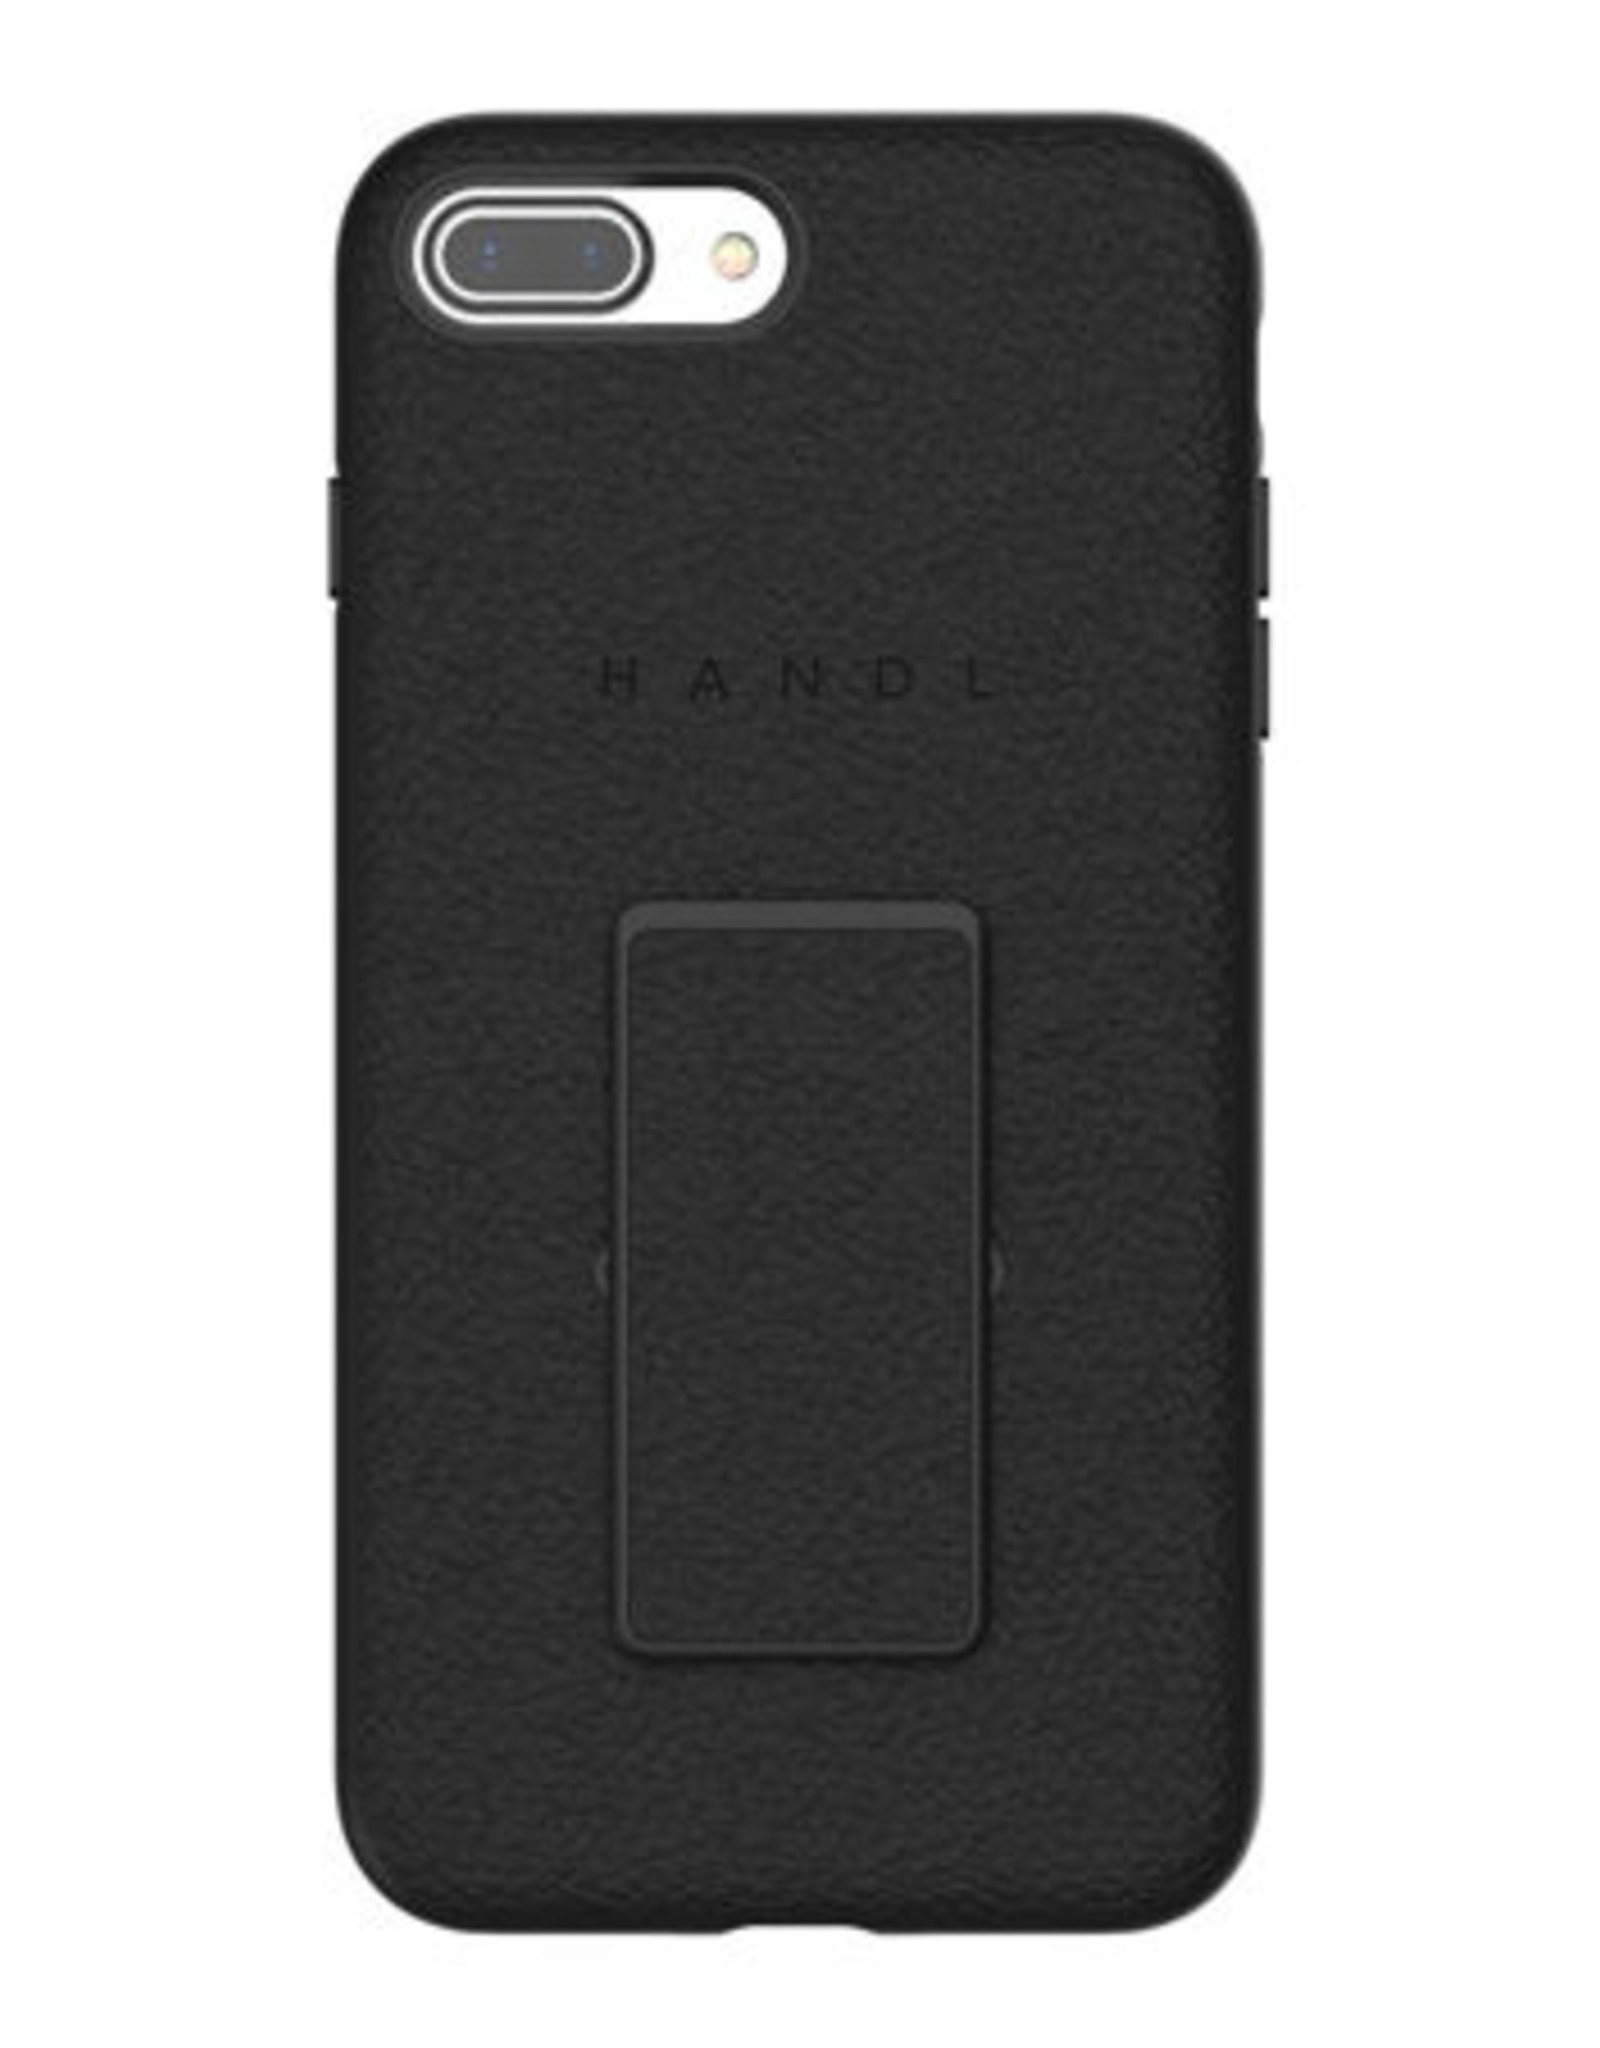 Handl | Inlay Case Black Pebble iPhone 6+/7+/8+ HD-AP02PBBK